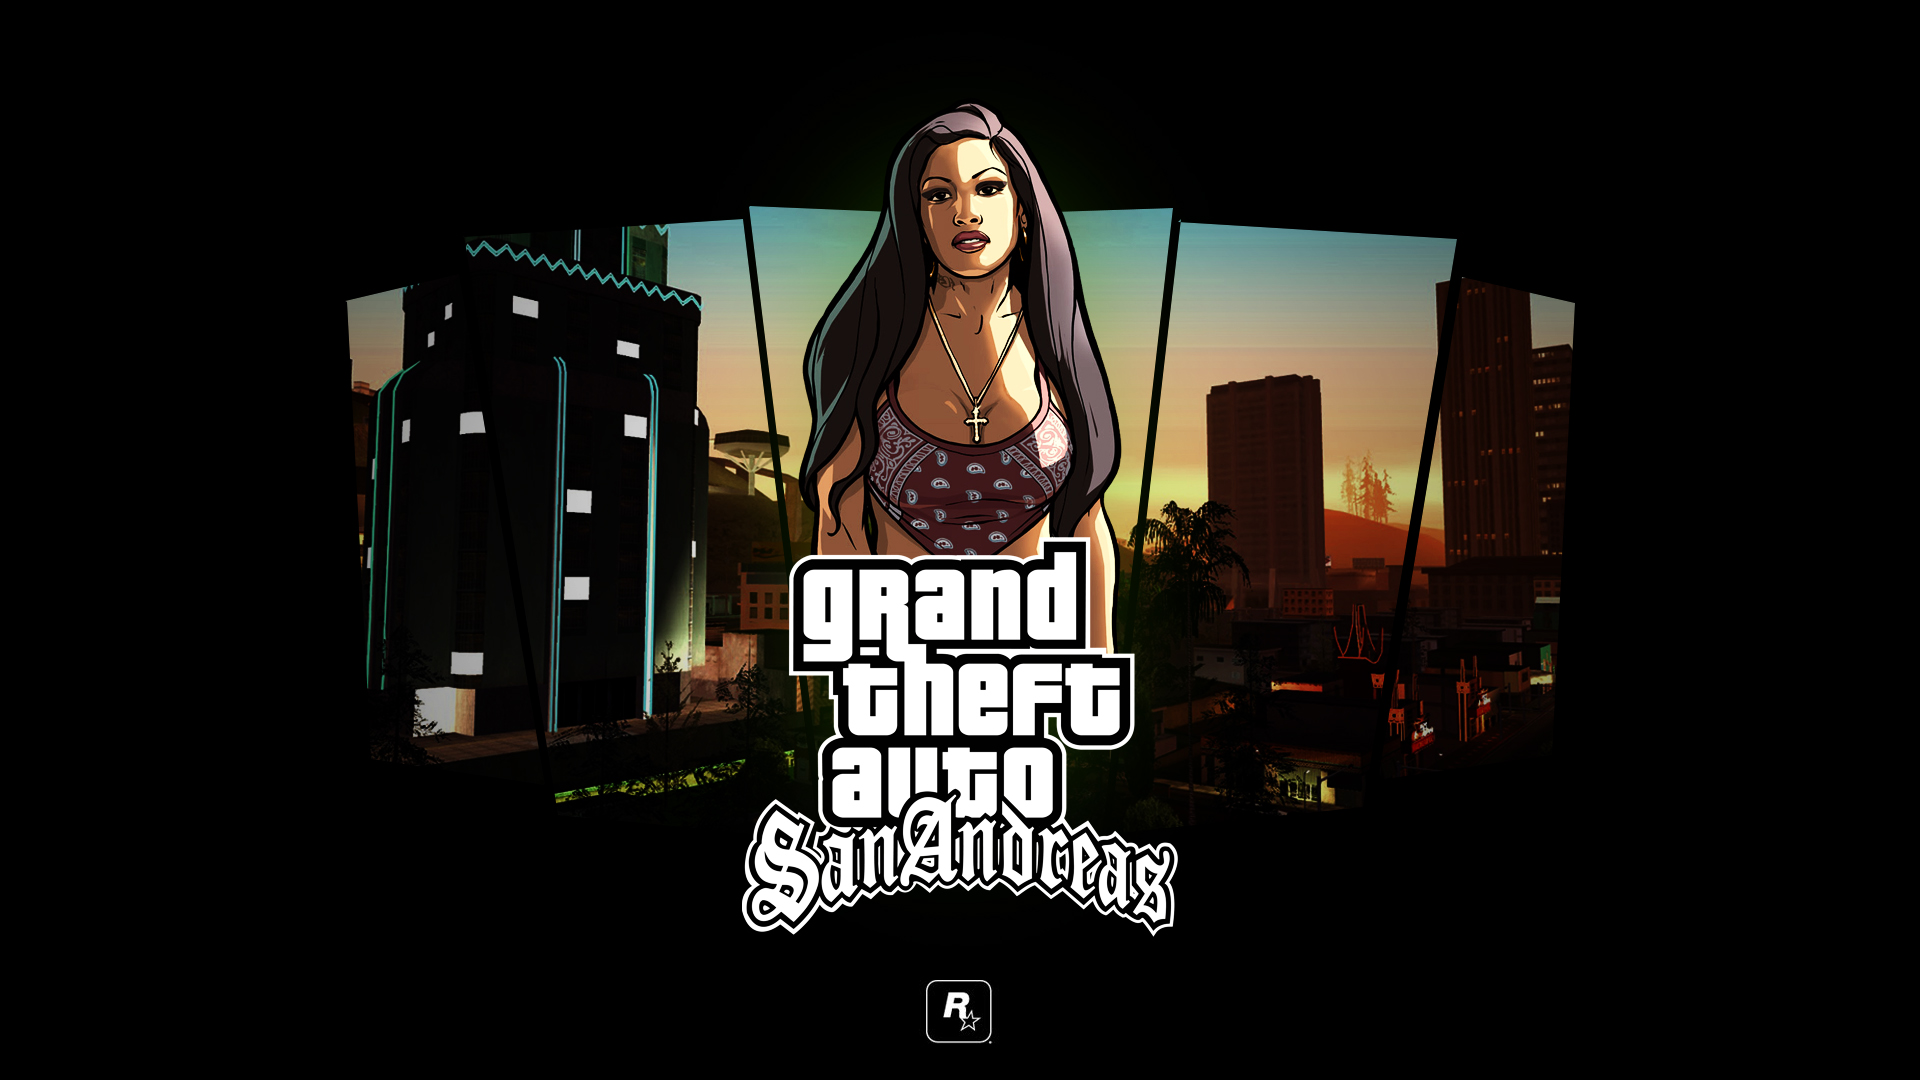 Gta san andreas ps2 dating millie 6